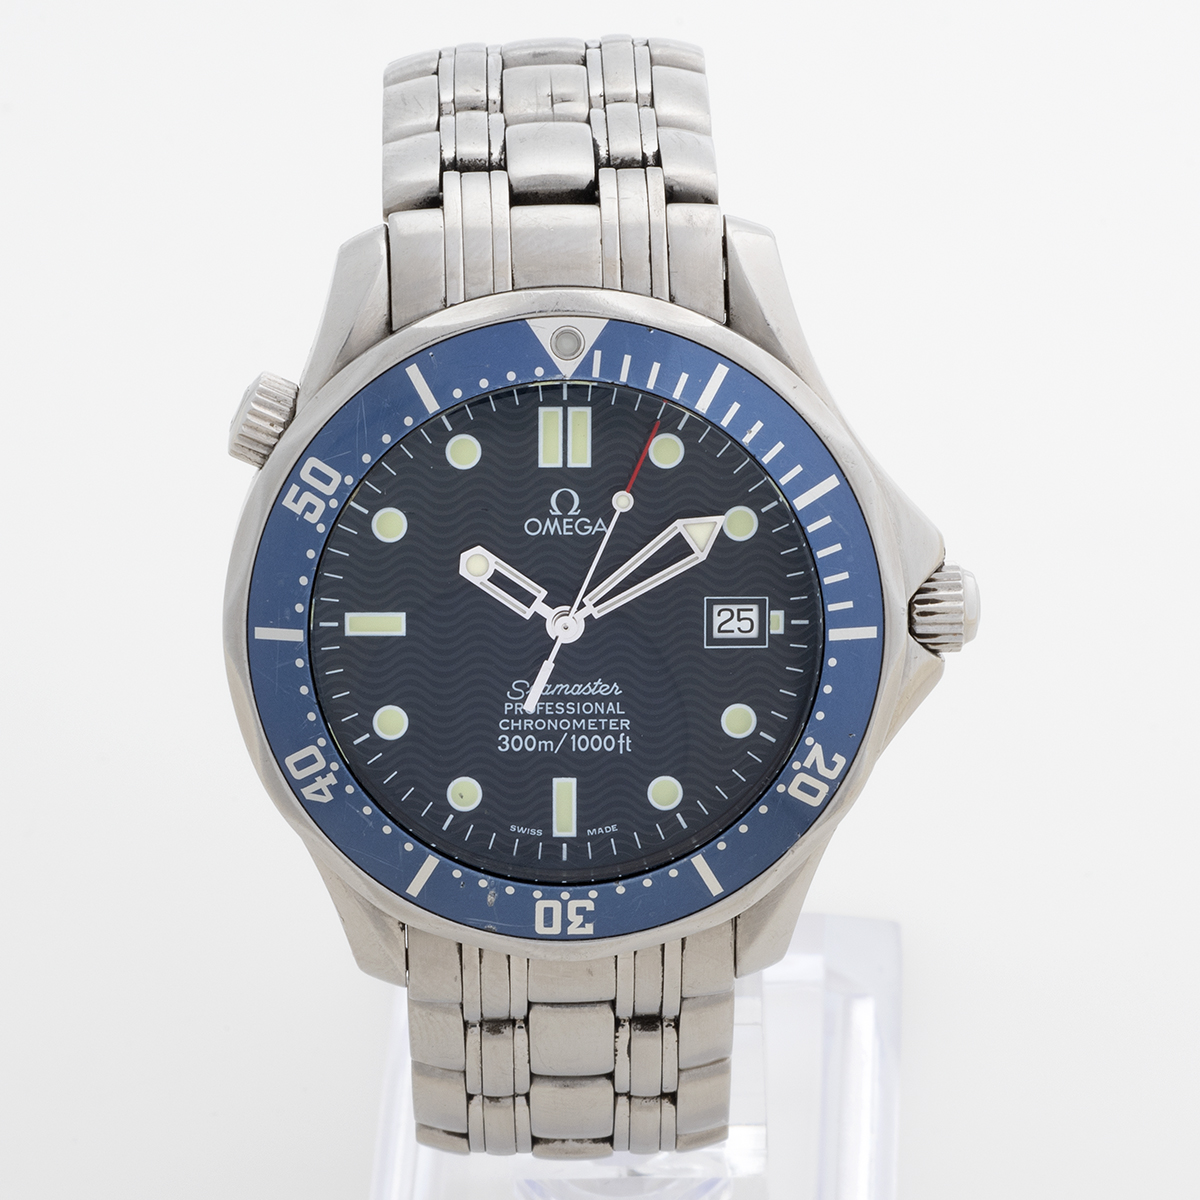 Omega Seamaster 300m Automatic 2531 80 00 Vintage And